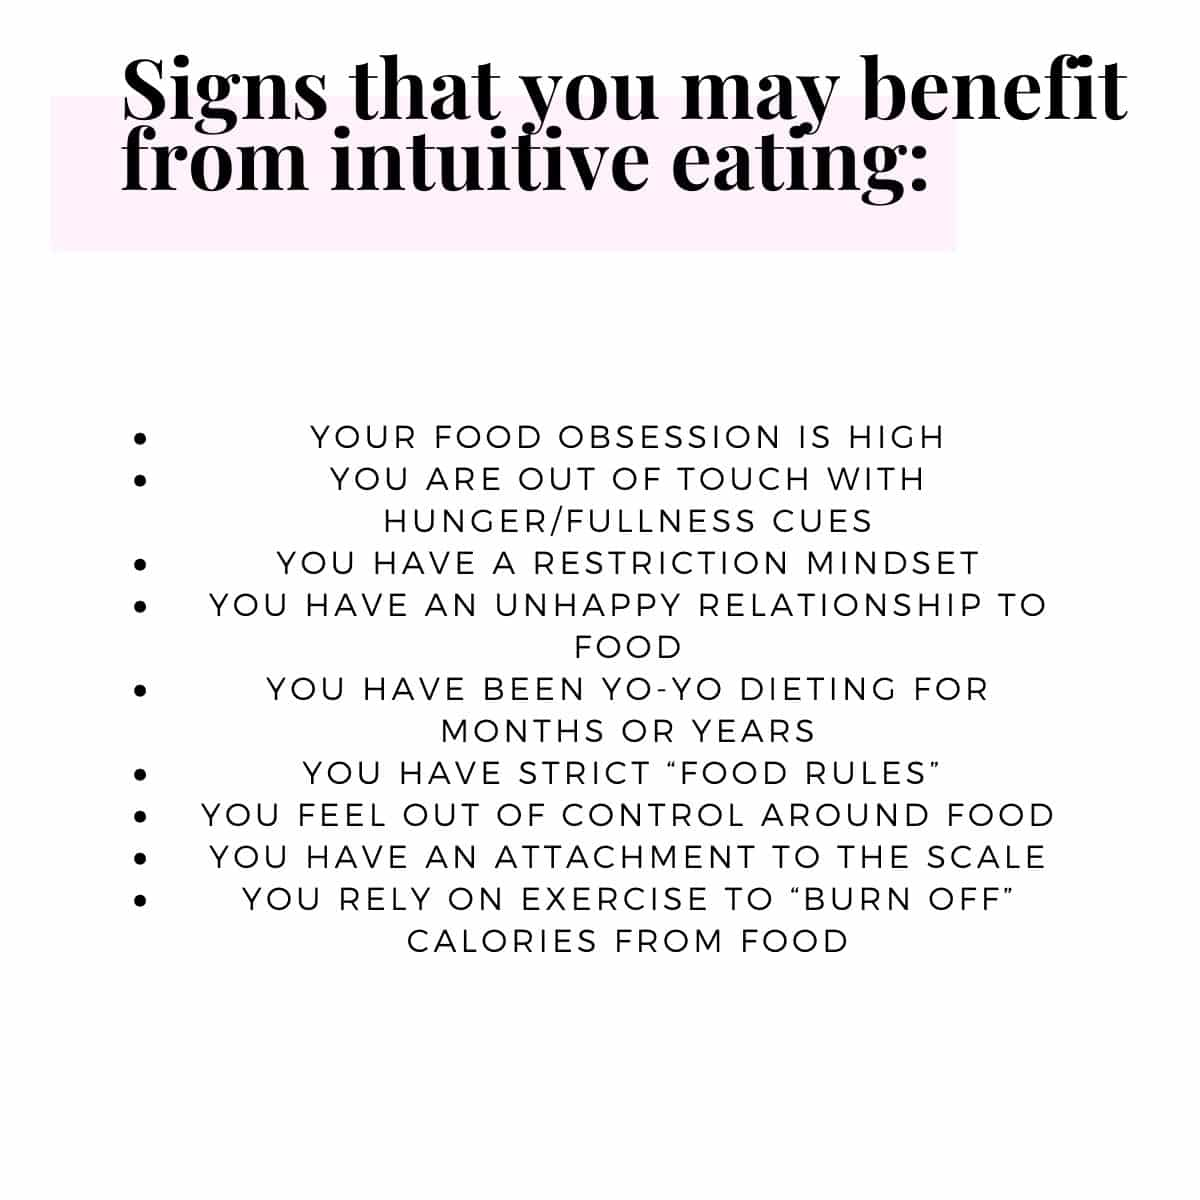 Signs that you may benefit from intuitive eating